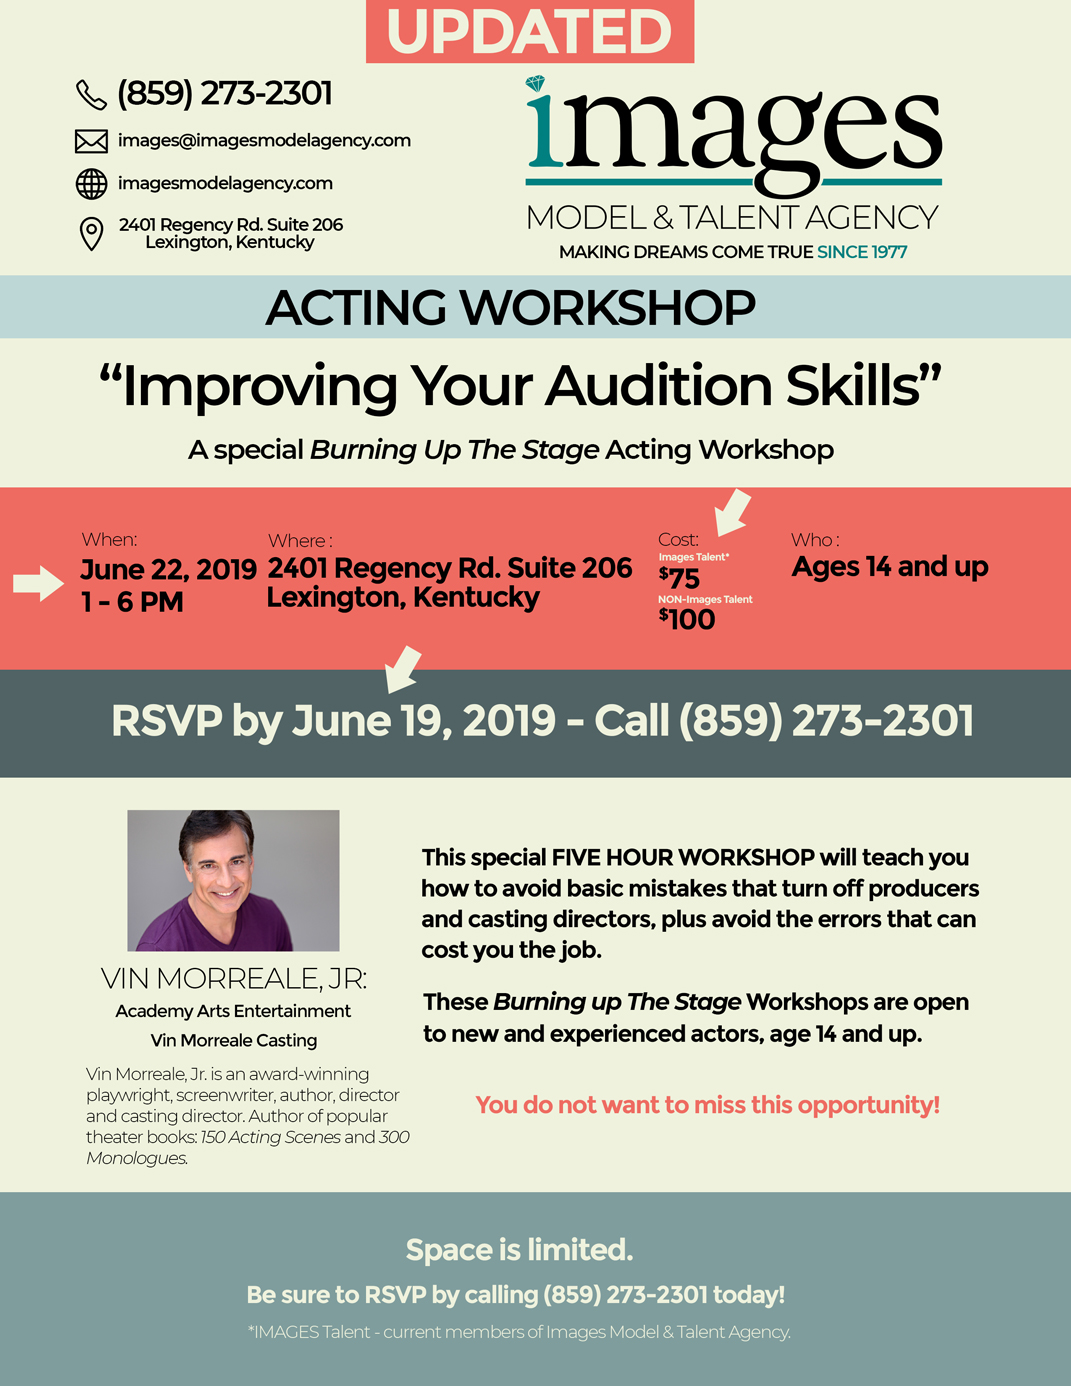 Acting Workshop Improving Your Audition Skills2